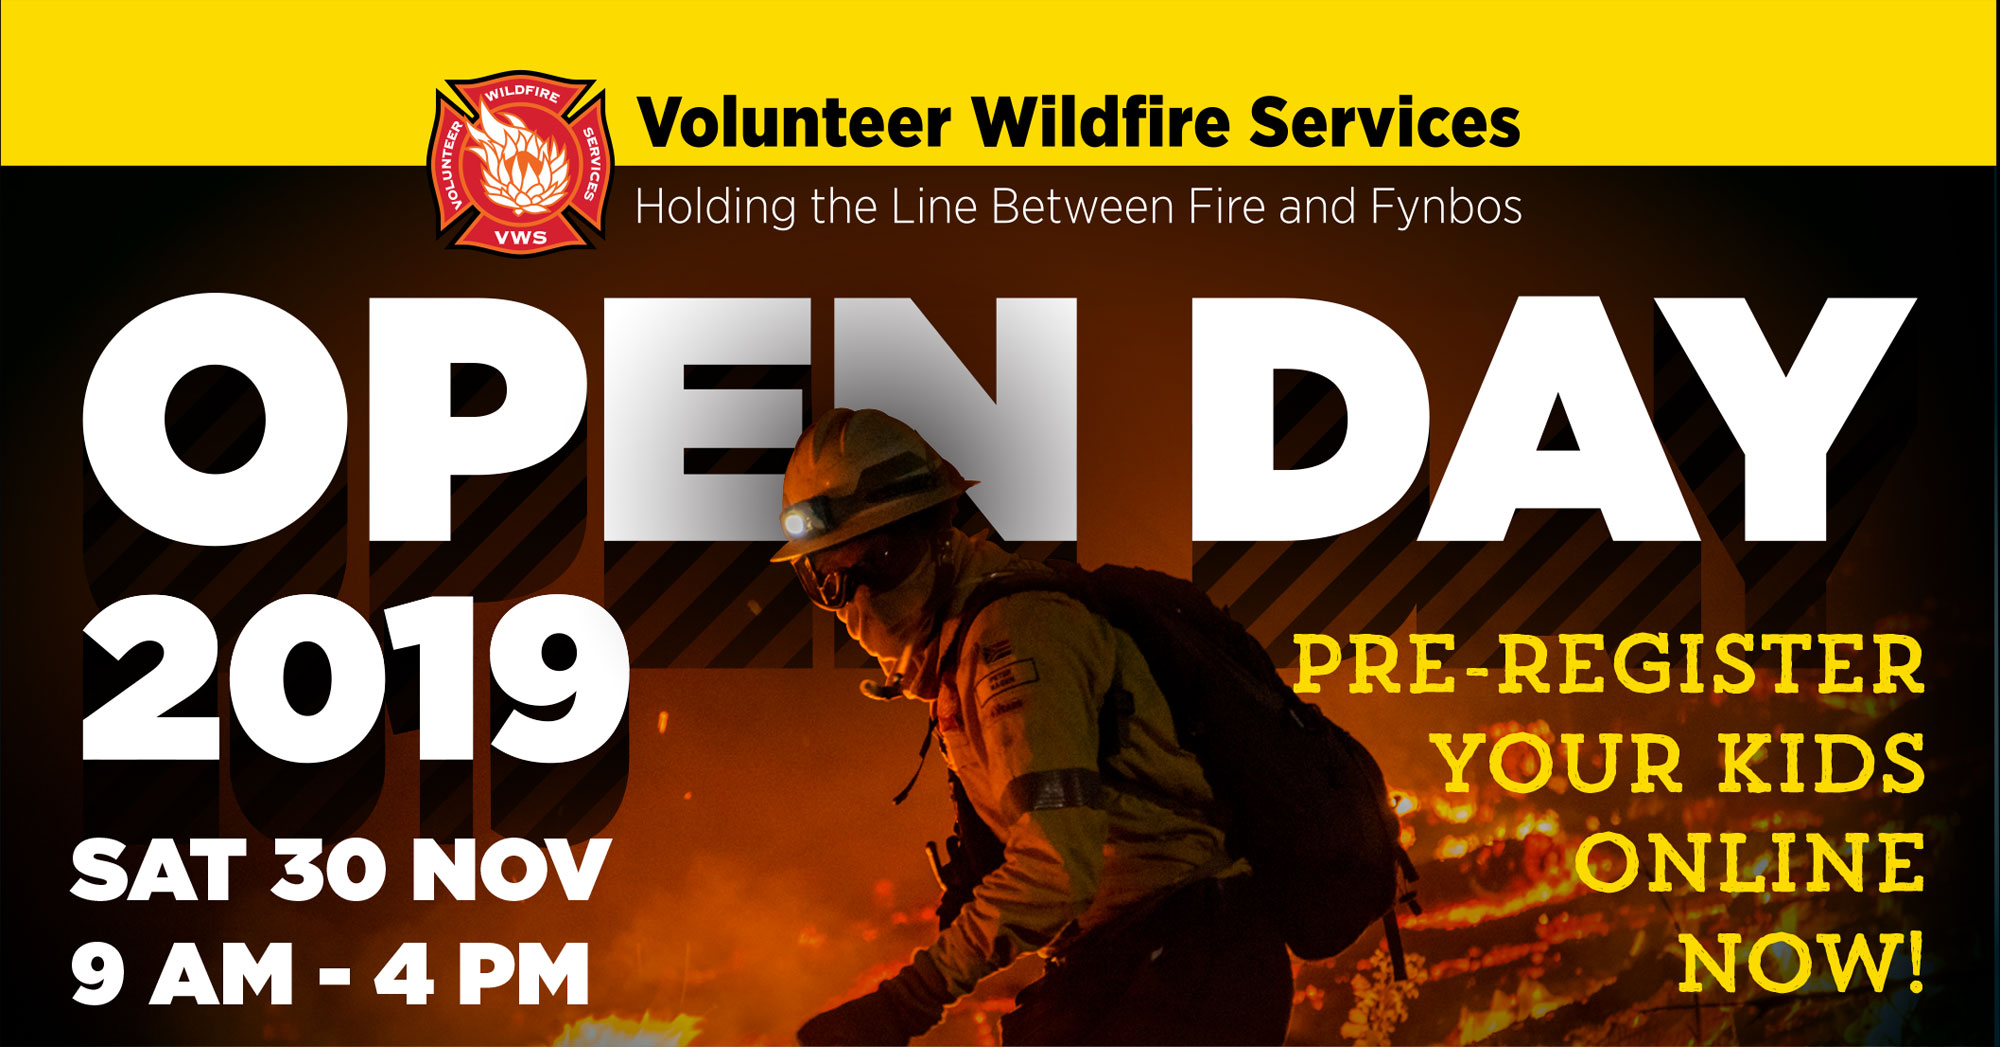 VWS OPEN DAY – 30TH NOVEMBER 2019